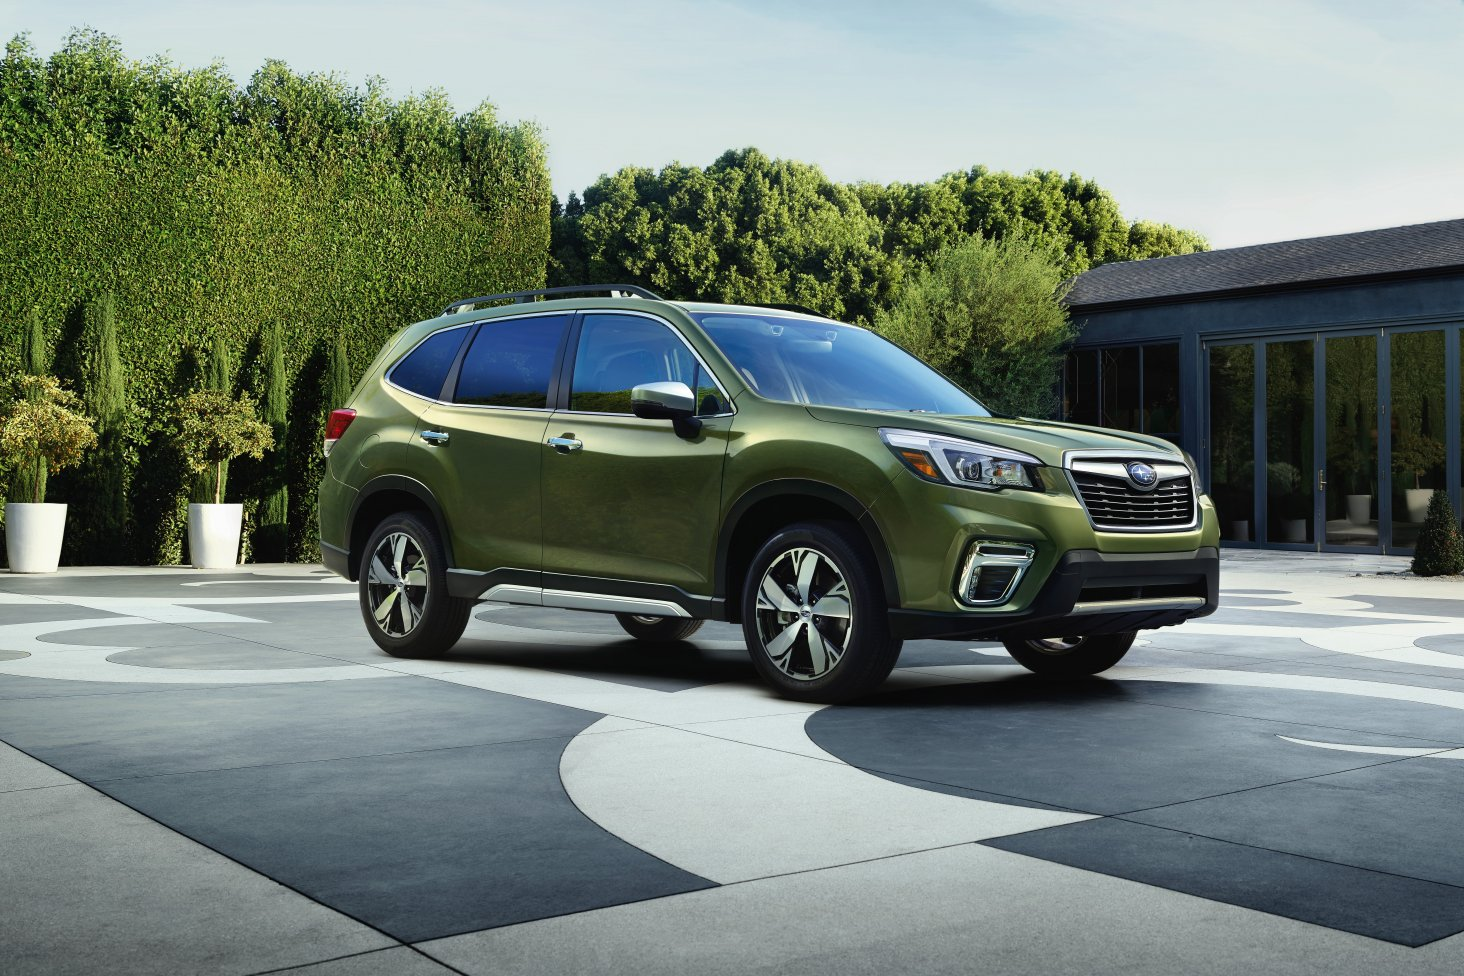 Every Forester will be powered by the newly-enhanced direct-injection 2.5-litre horizontally opposed, normally aspirated, four-cylinder Boxer engine.